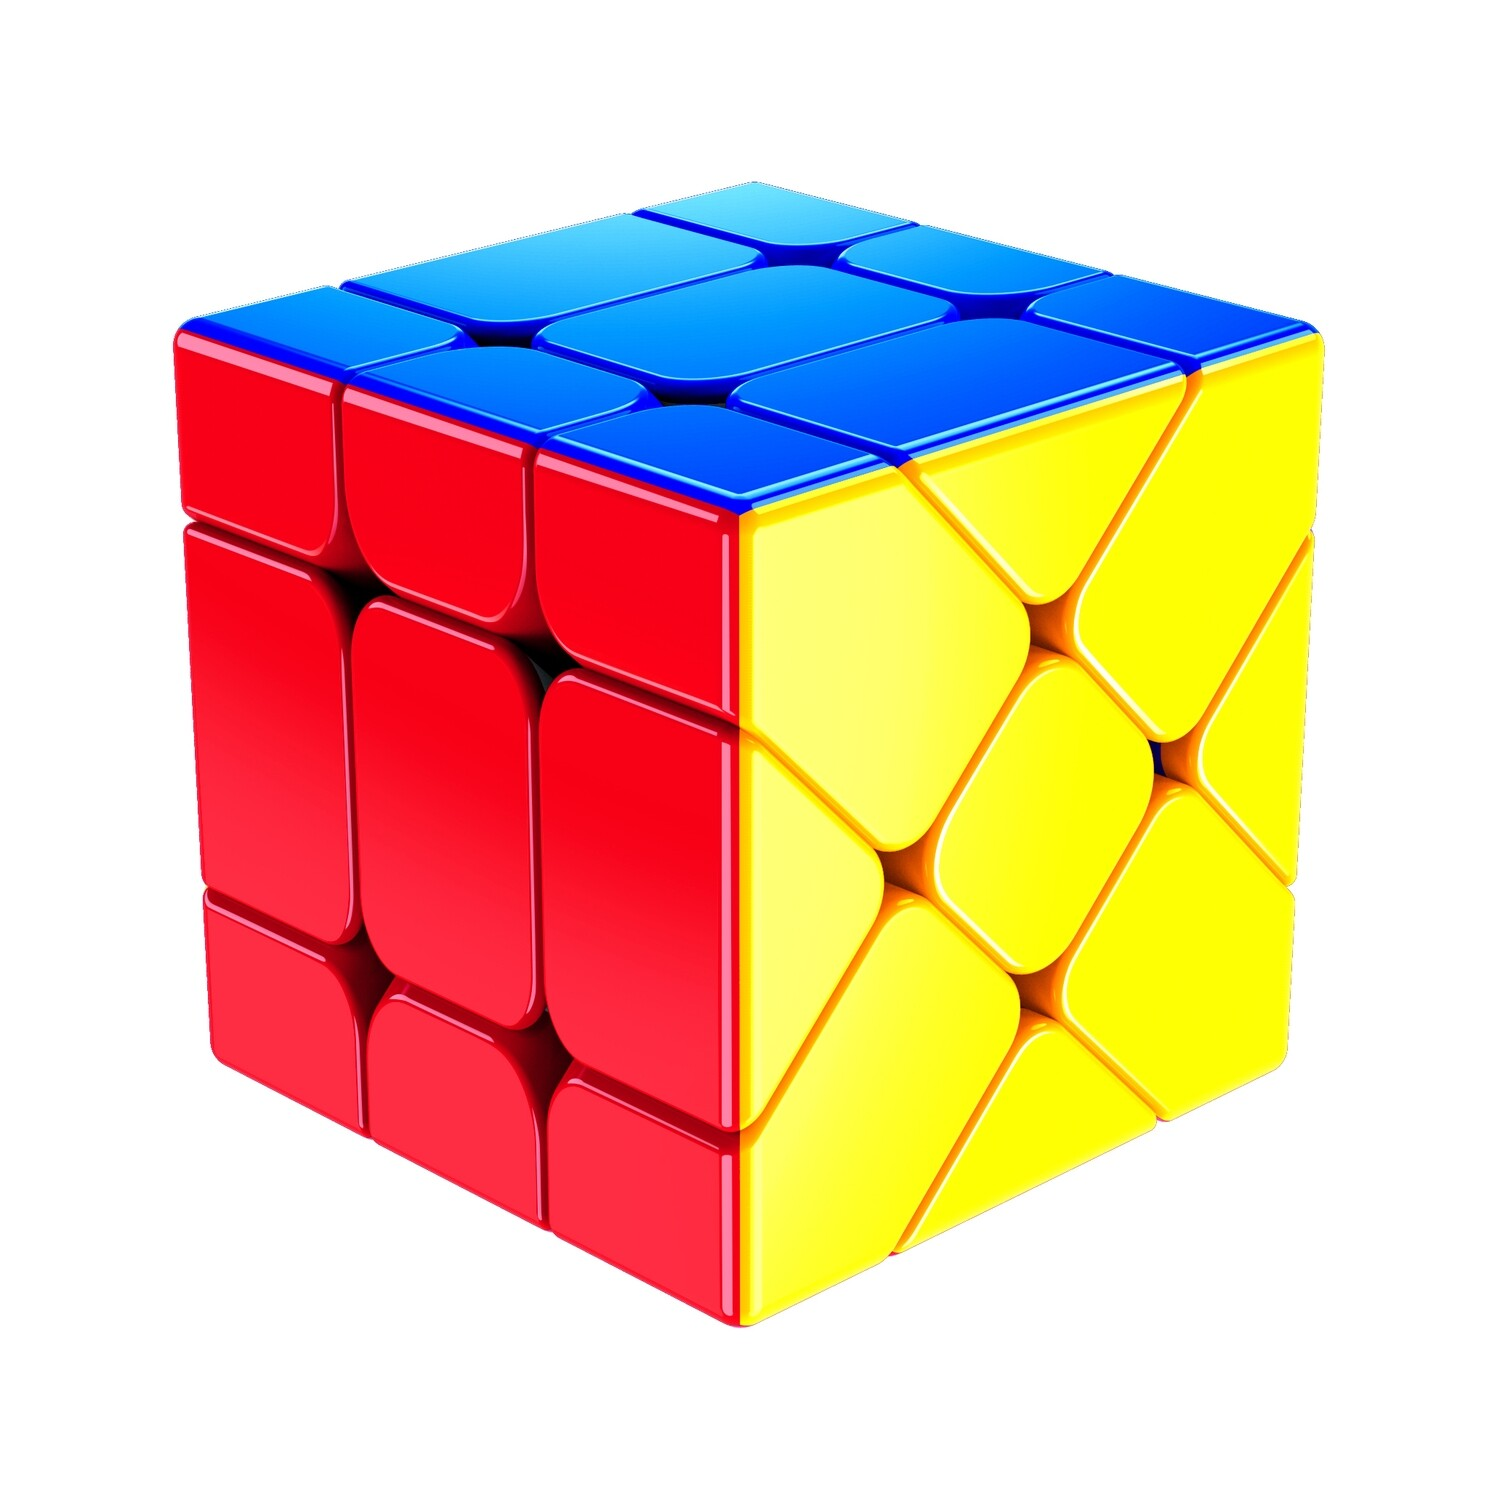 YJ Fisher Cube 3x3x3 color